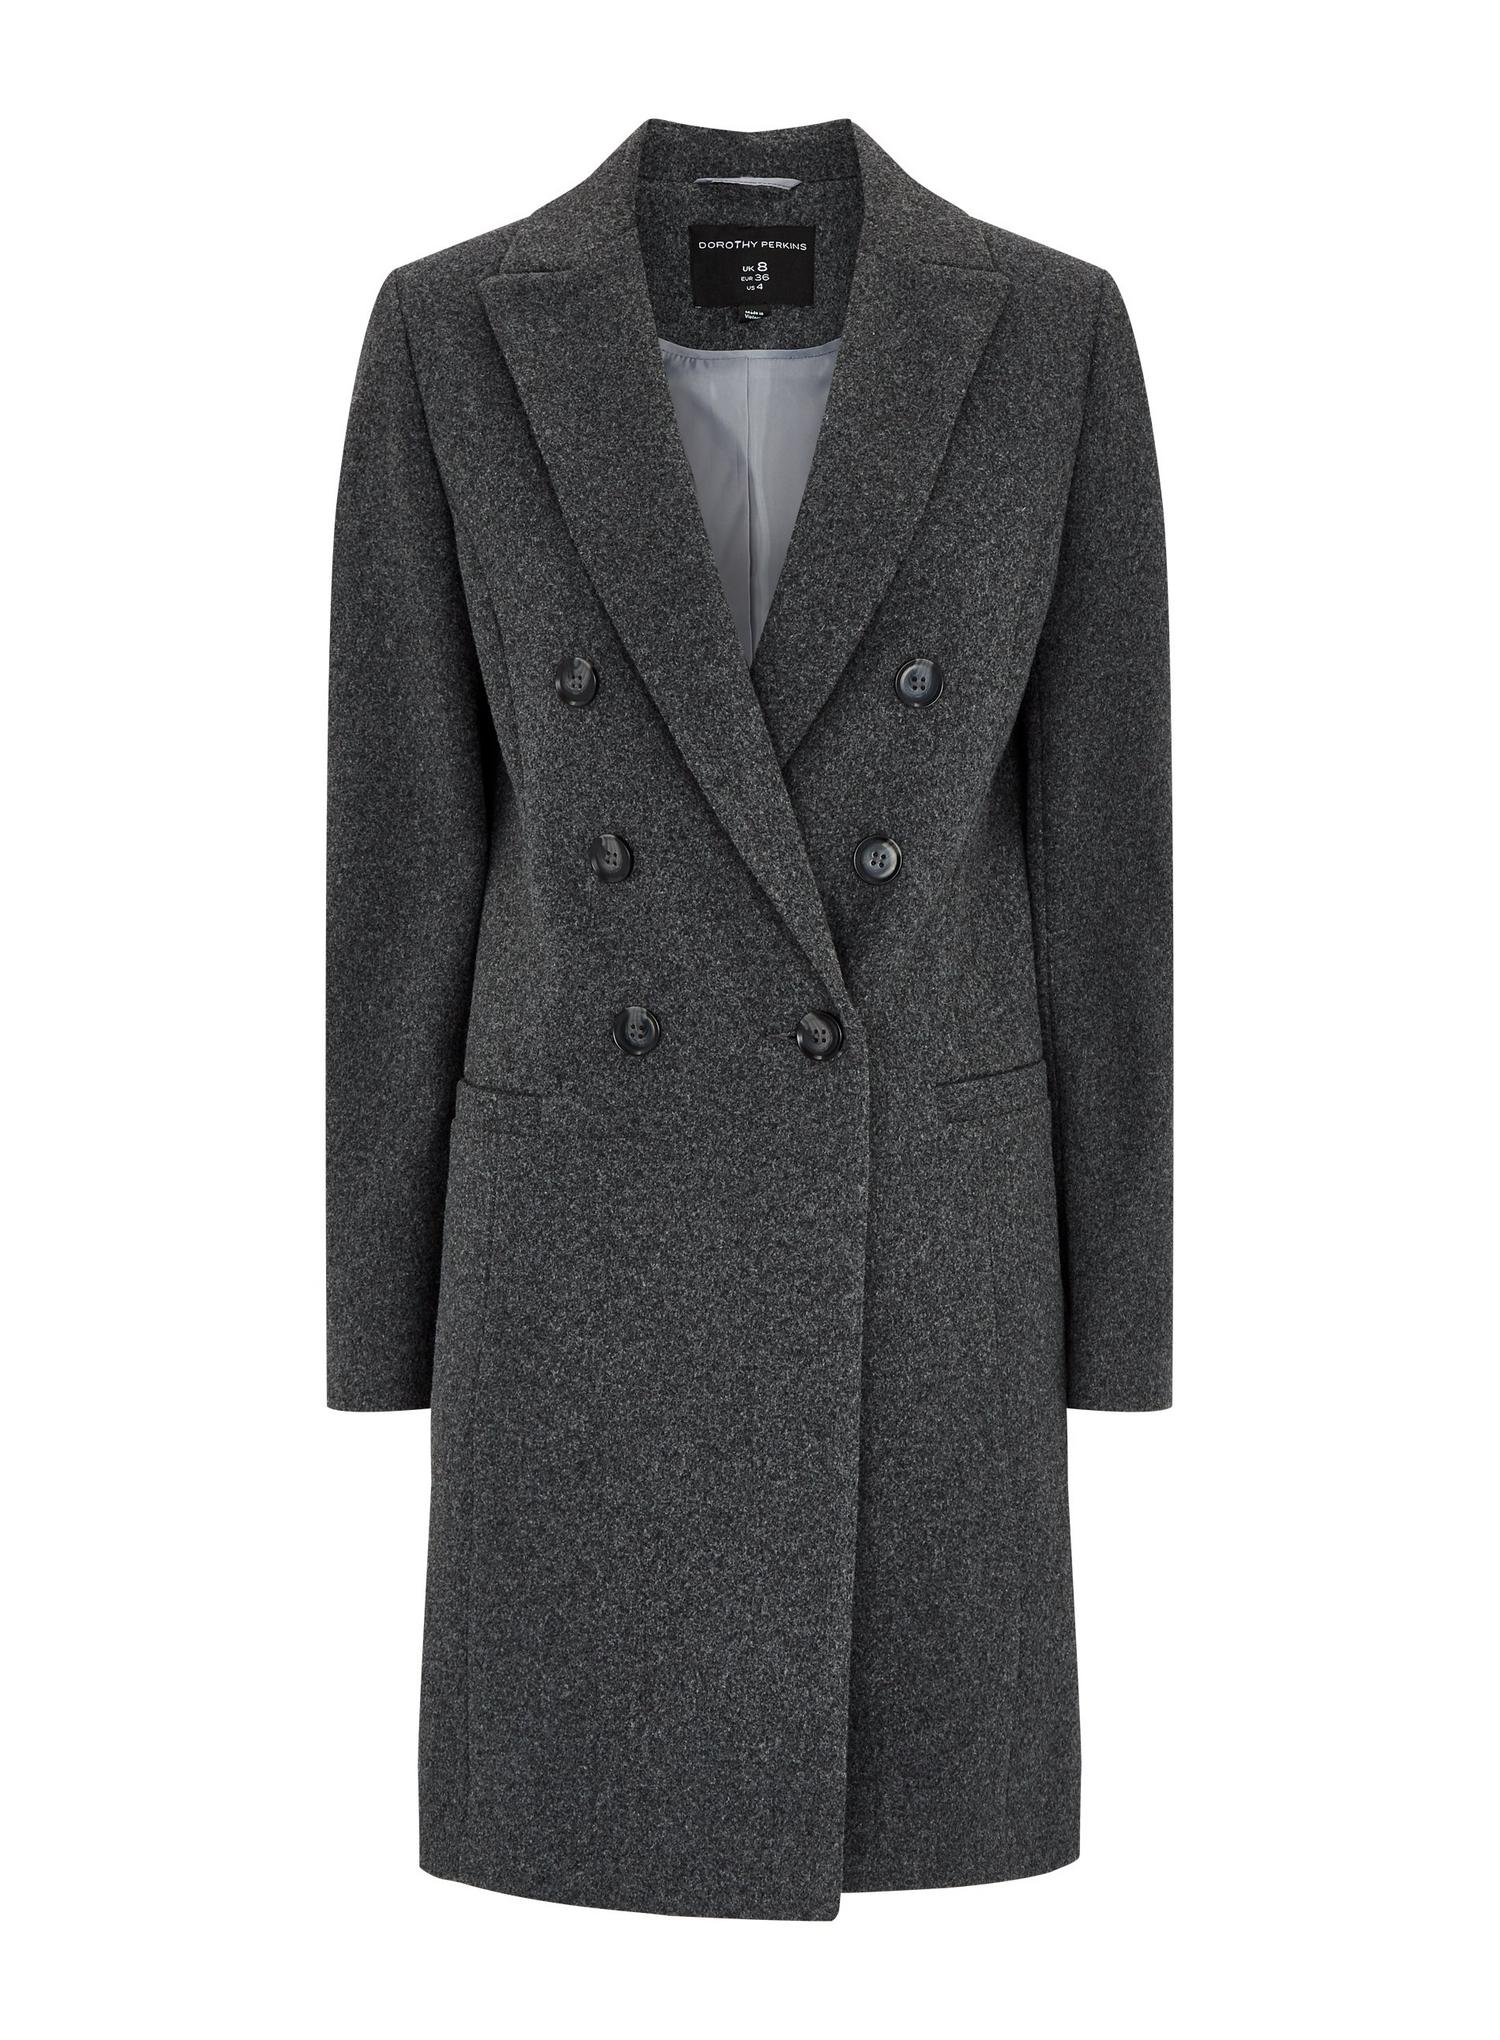 131 Grey Double Breasted Coat image number 2